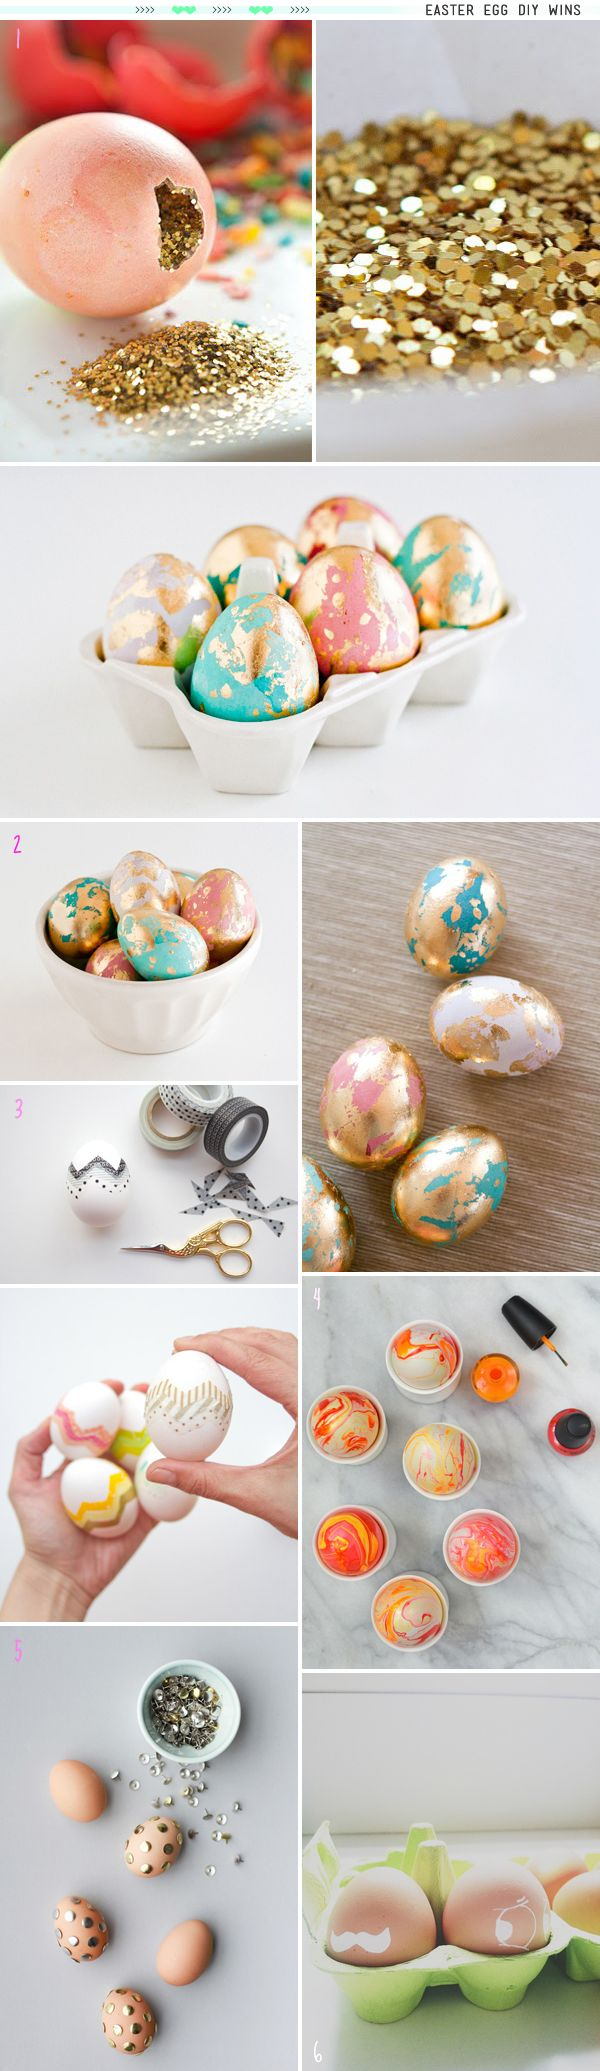 Please Enjoy This Series of Easter-Themed DIY Projects That Don't Suck. (on theknottybride.com)